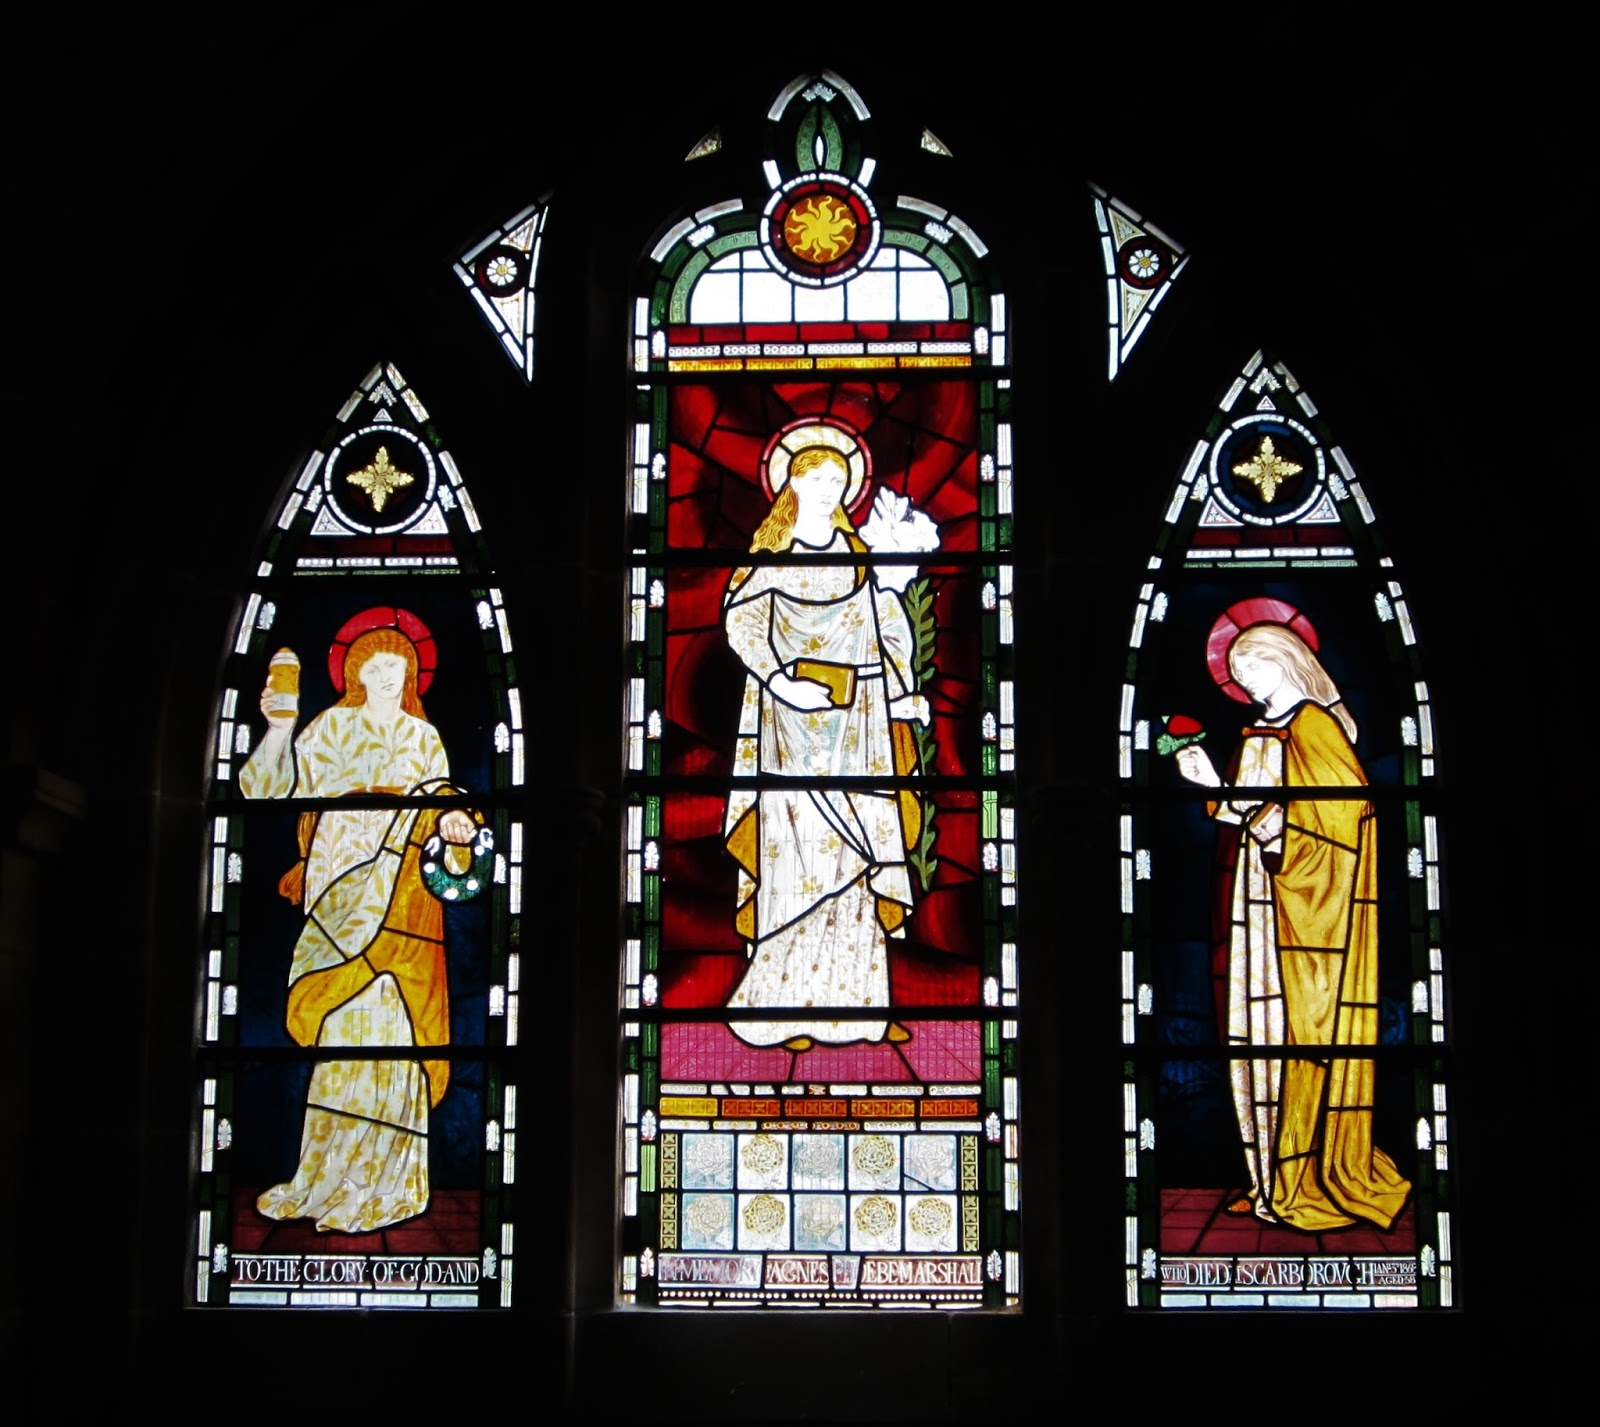 Franklin art glass studios inc clear cotswold glass 3 320 - The Three Marys Window Originally Made For St Martin S Church In Brighton But Rejected Because It Features Lizzie Siddal A Probable Suicide